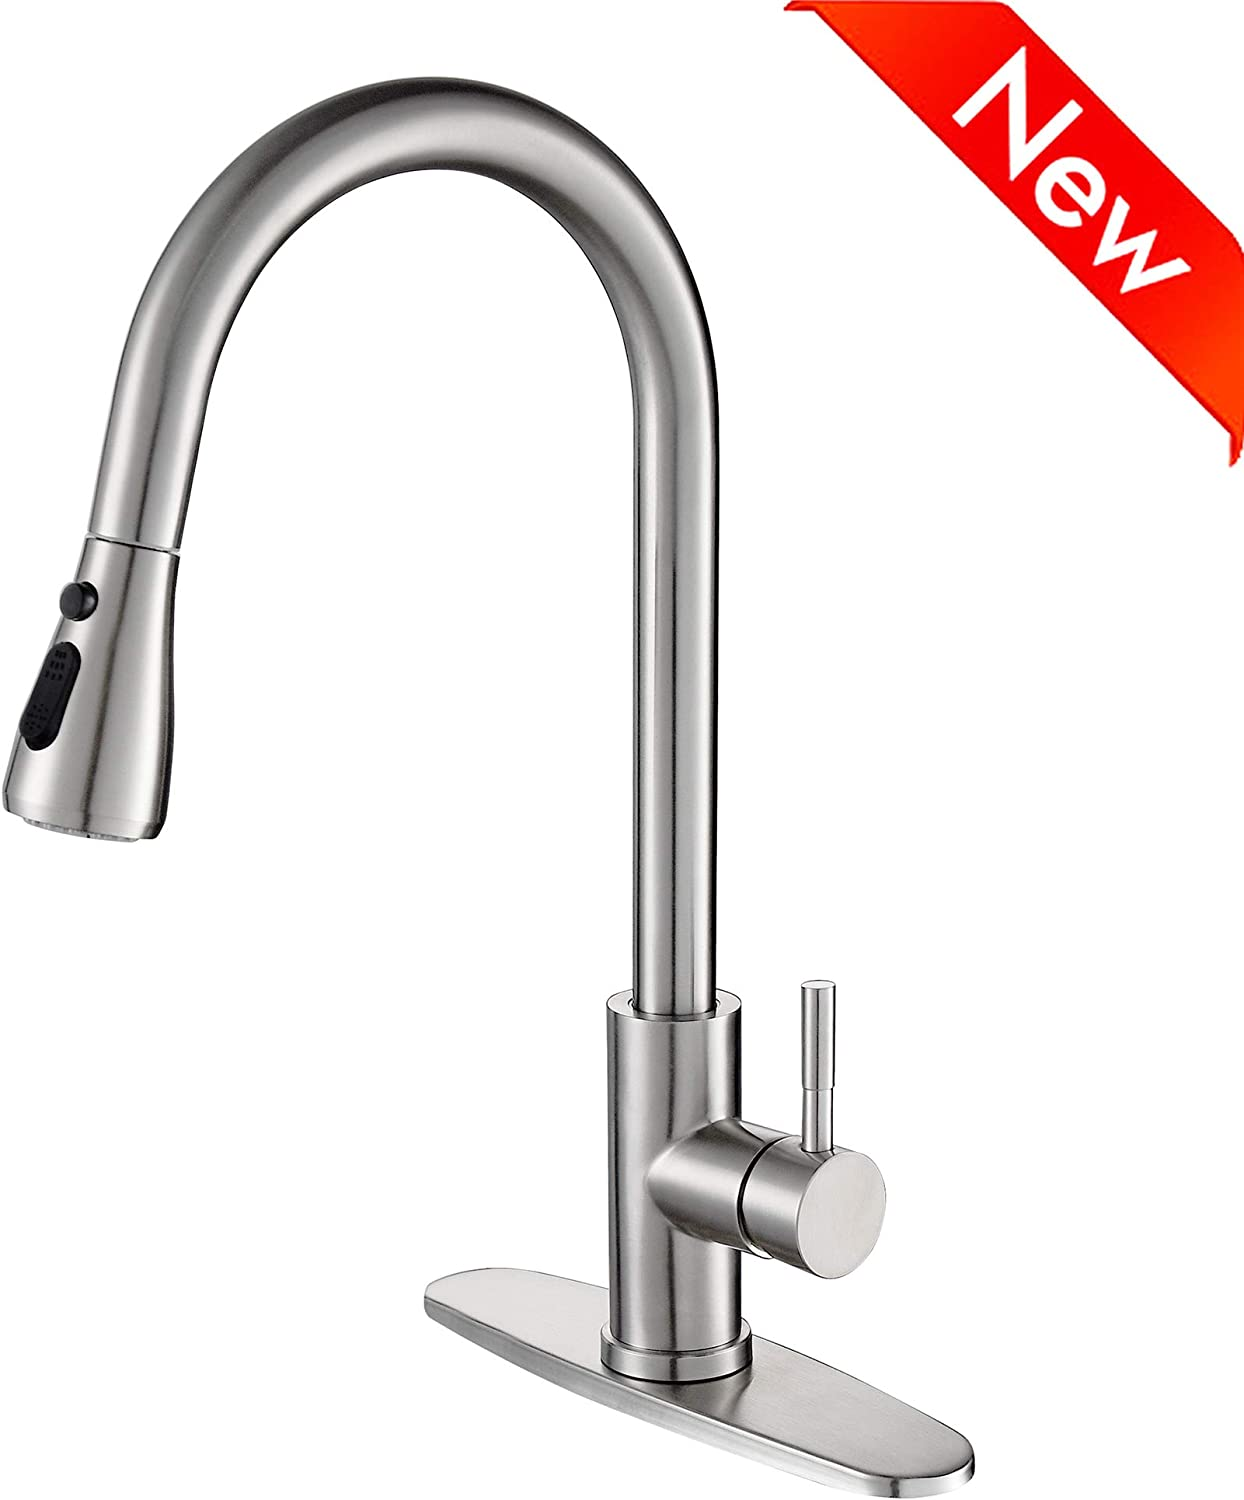 Stainless Steel Kitchen Faucet With Pull Down Sprayer High Arc Single Handle Faucets For Kitchen Sink With Deck Plate Brushed Nickel Naturous Amazon Com